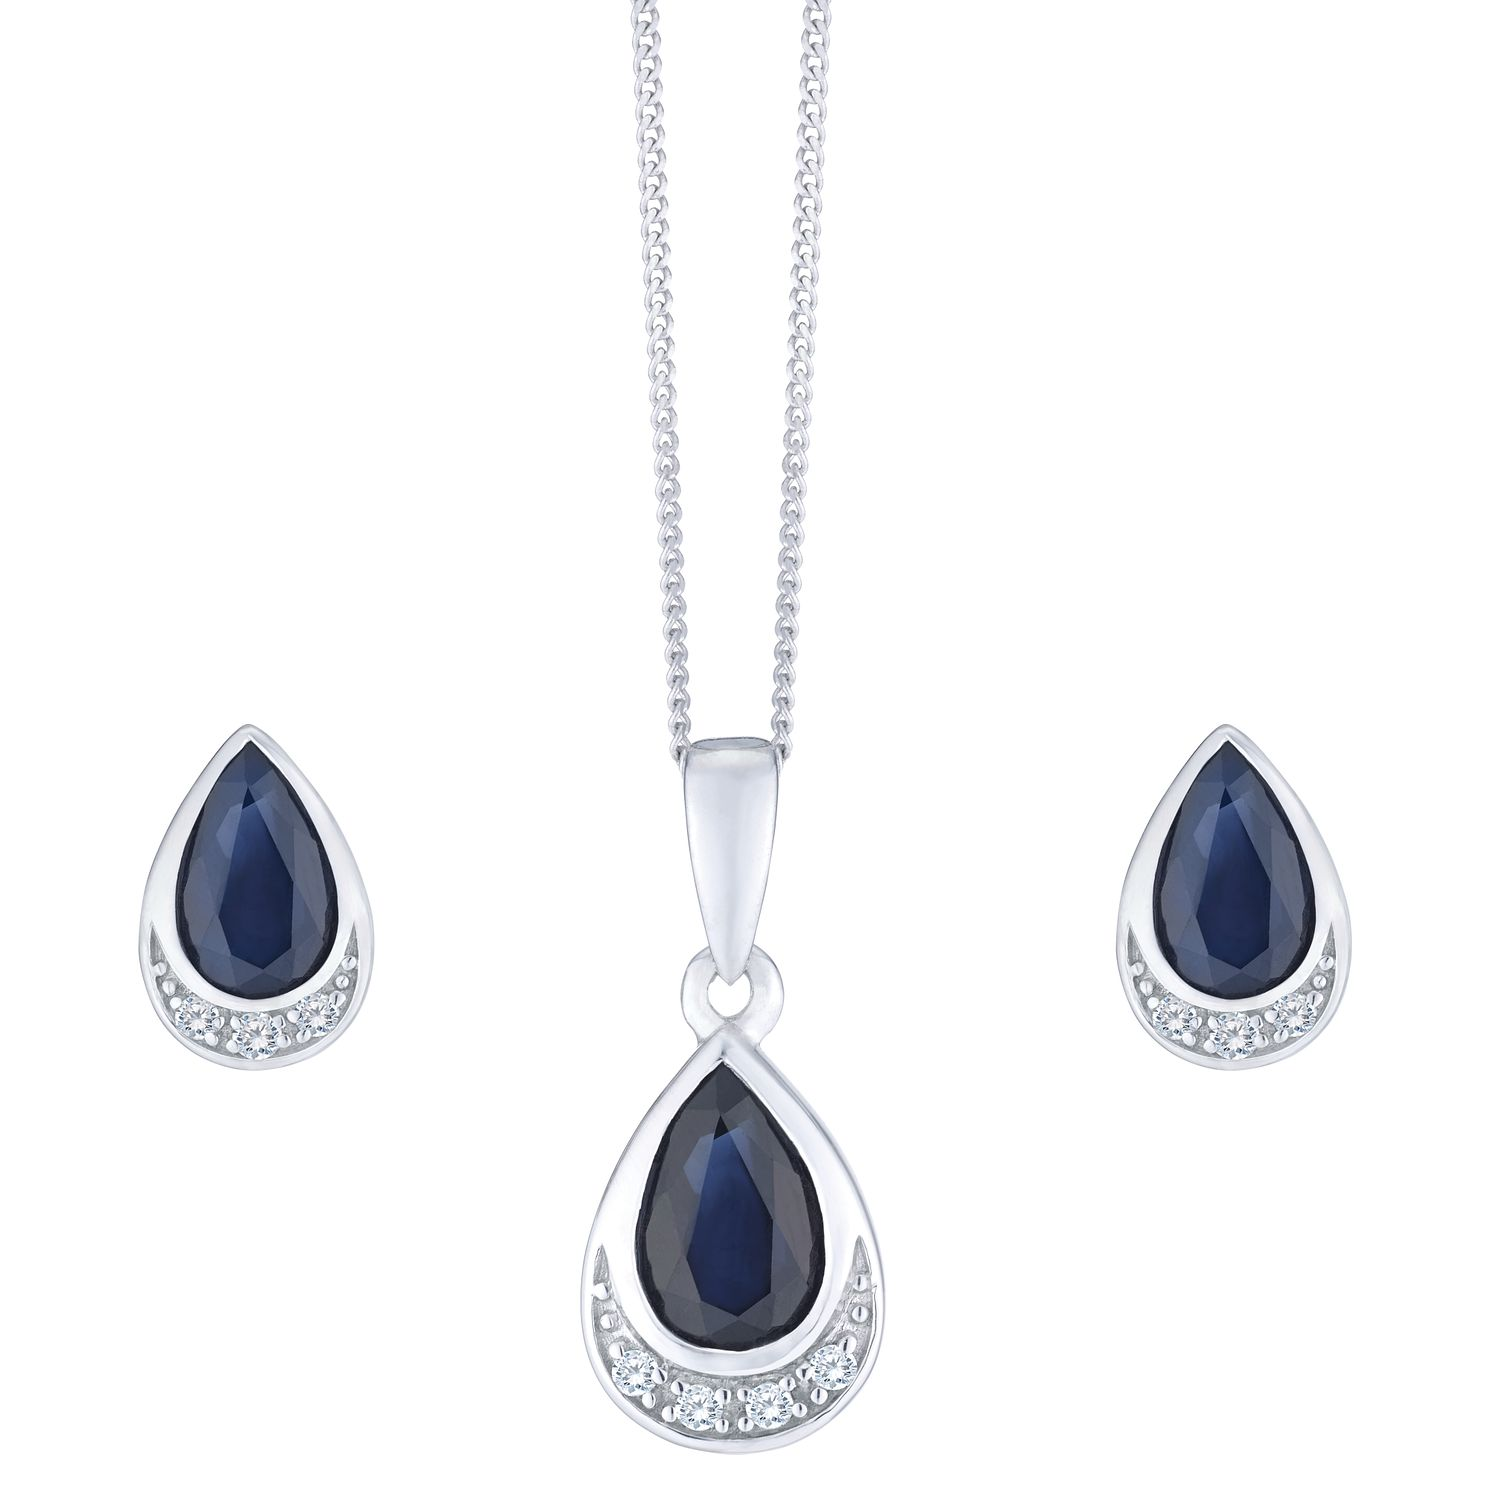 9ct White Gold Sapphire And Diamond Jewellery Set - Product number 8147337